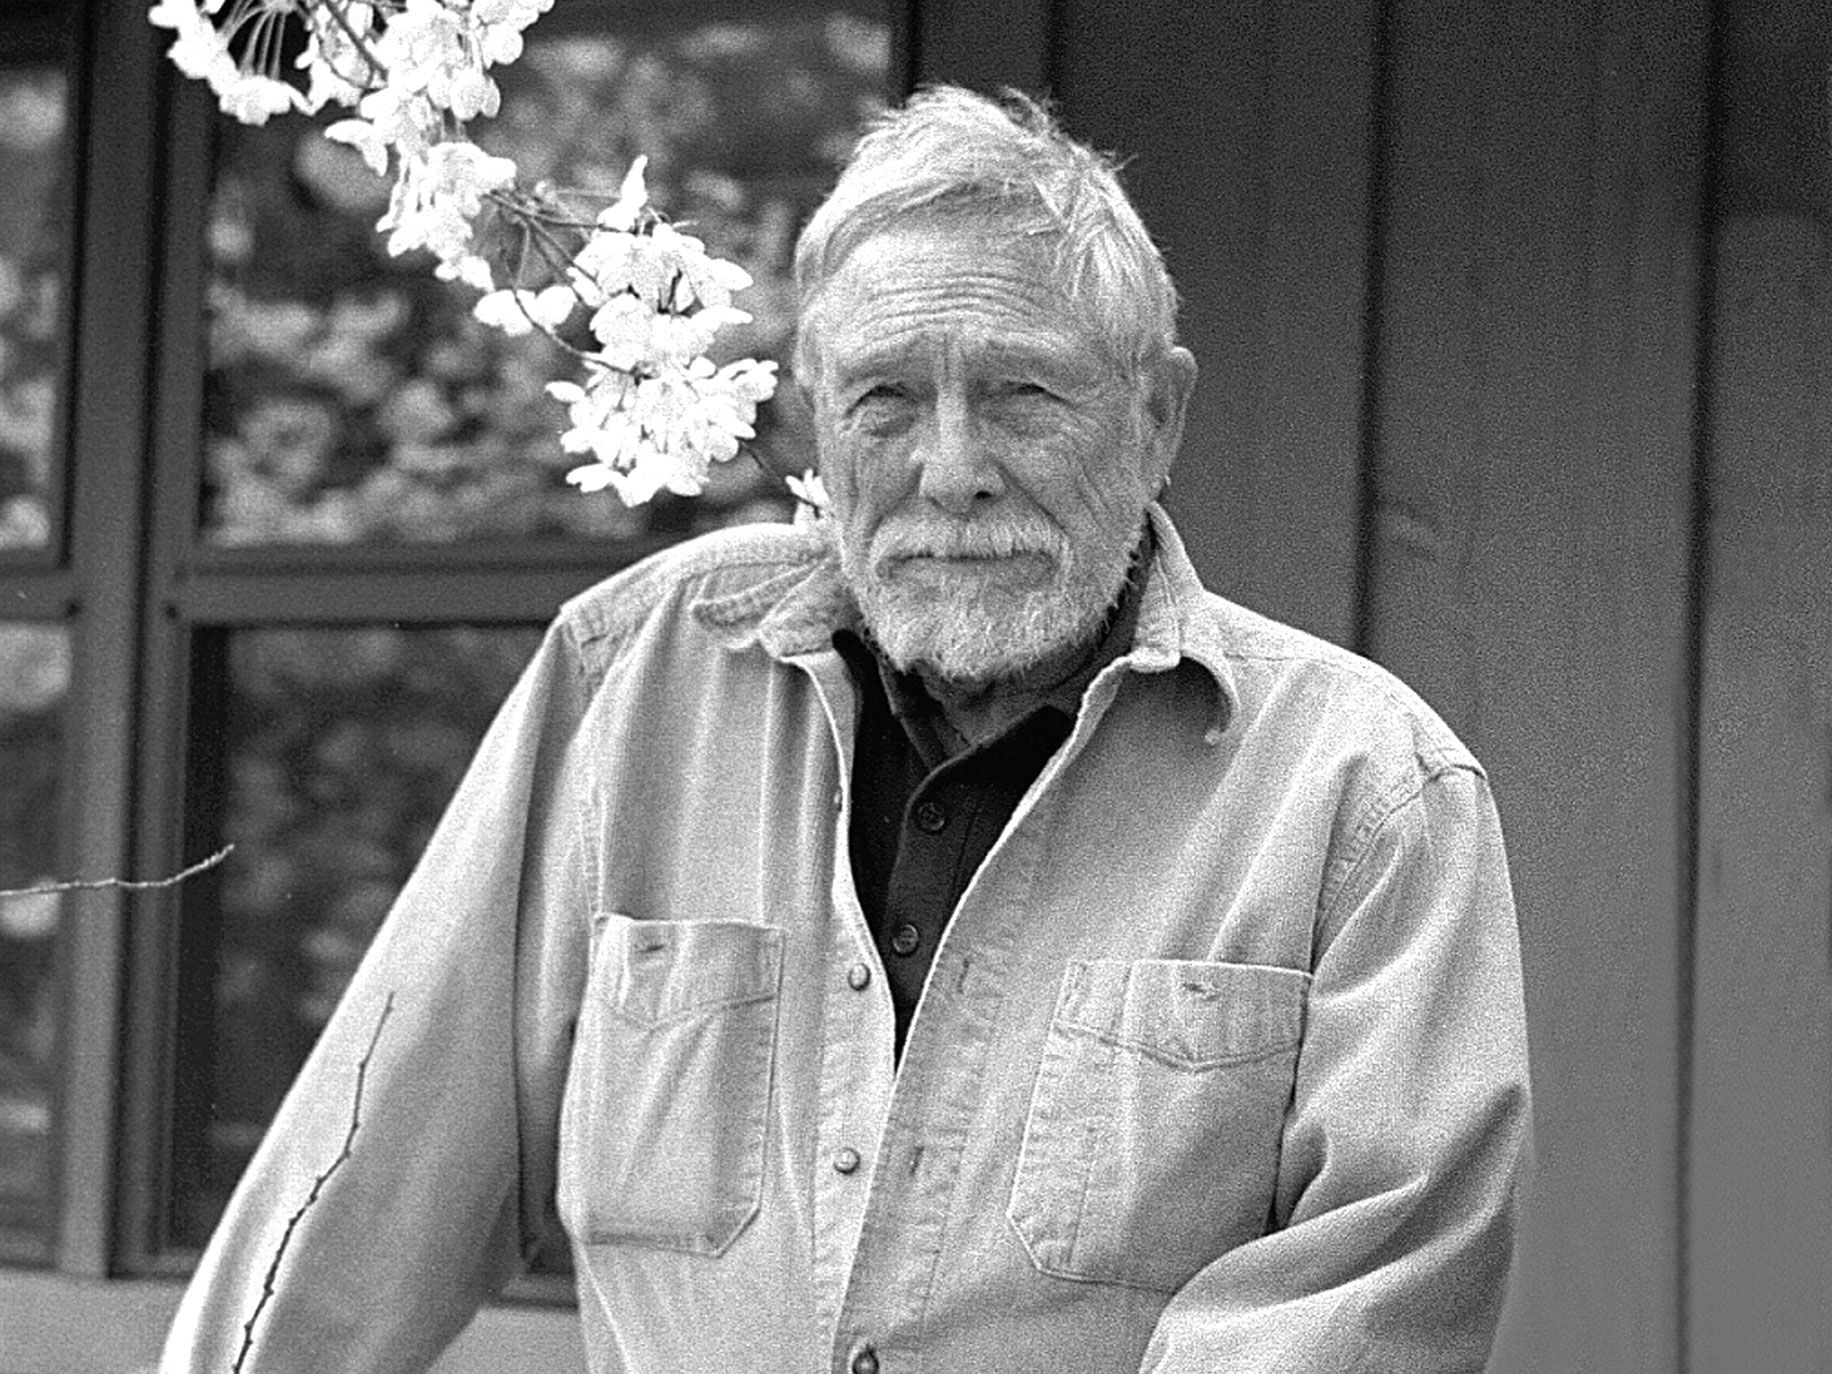 Born in San Francisco, poet Gary Snyder was a member of the legendary Beat school of writers.